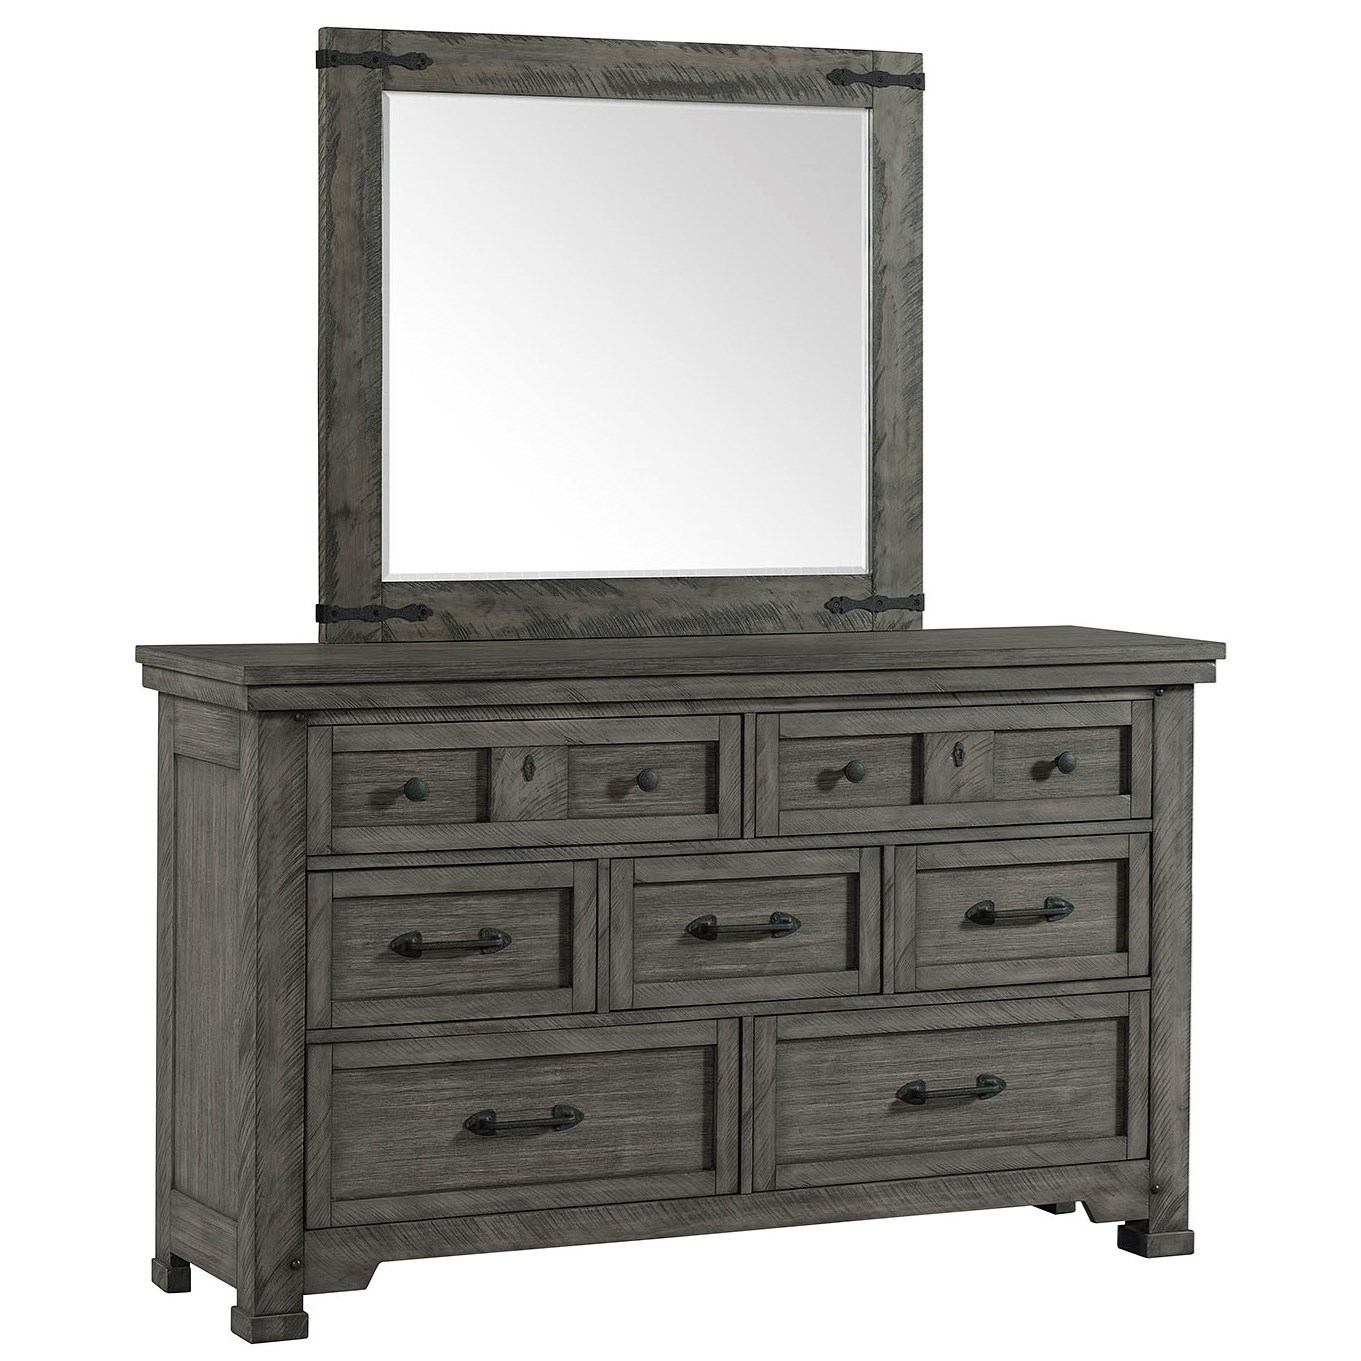 Old Forge Dresser and Mirror Set by Lane at Powell's Furniture and Mattress